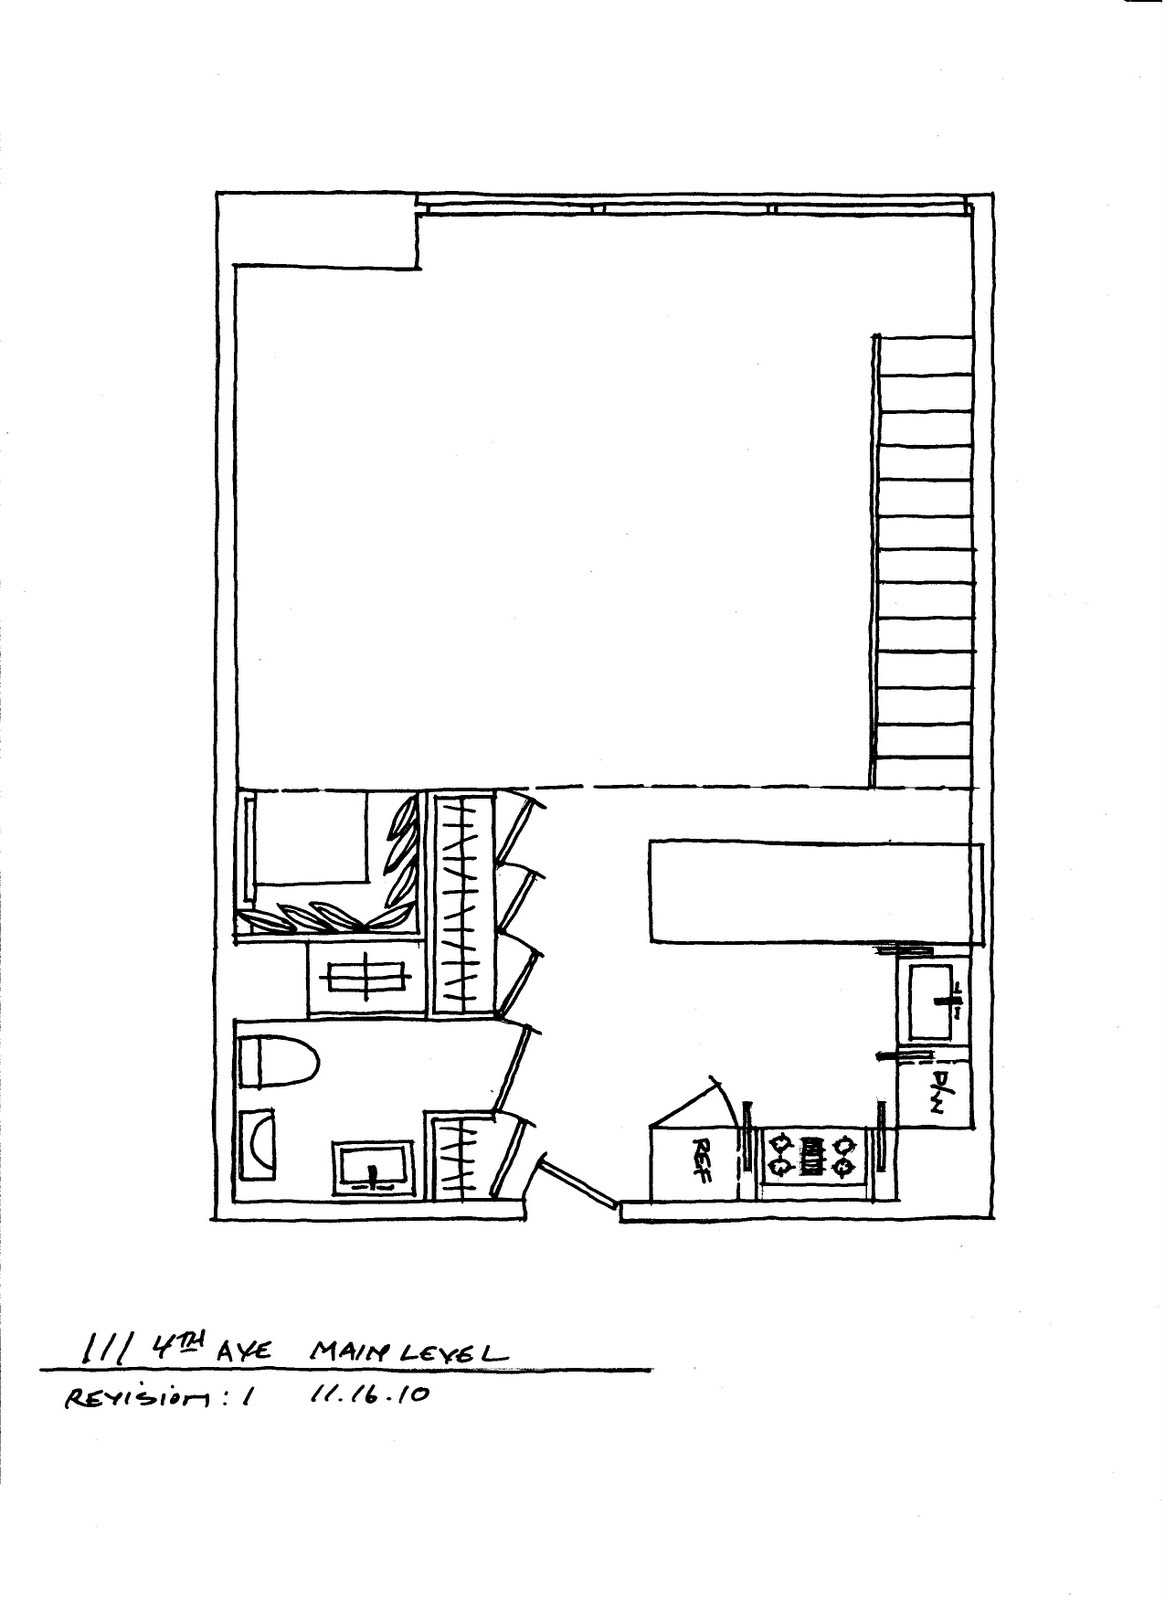 111 fourth ave  new plans